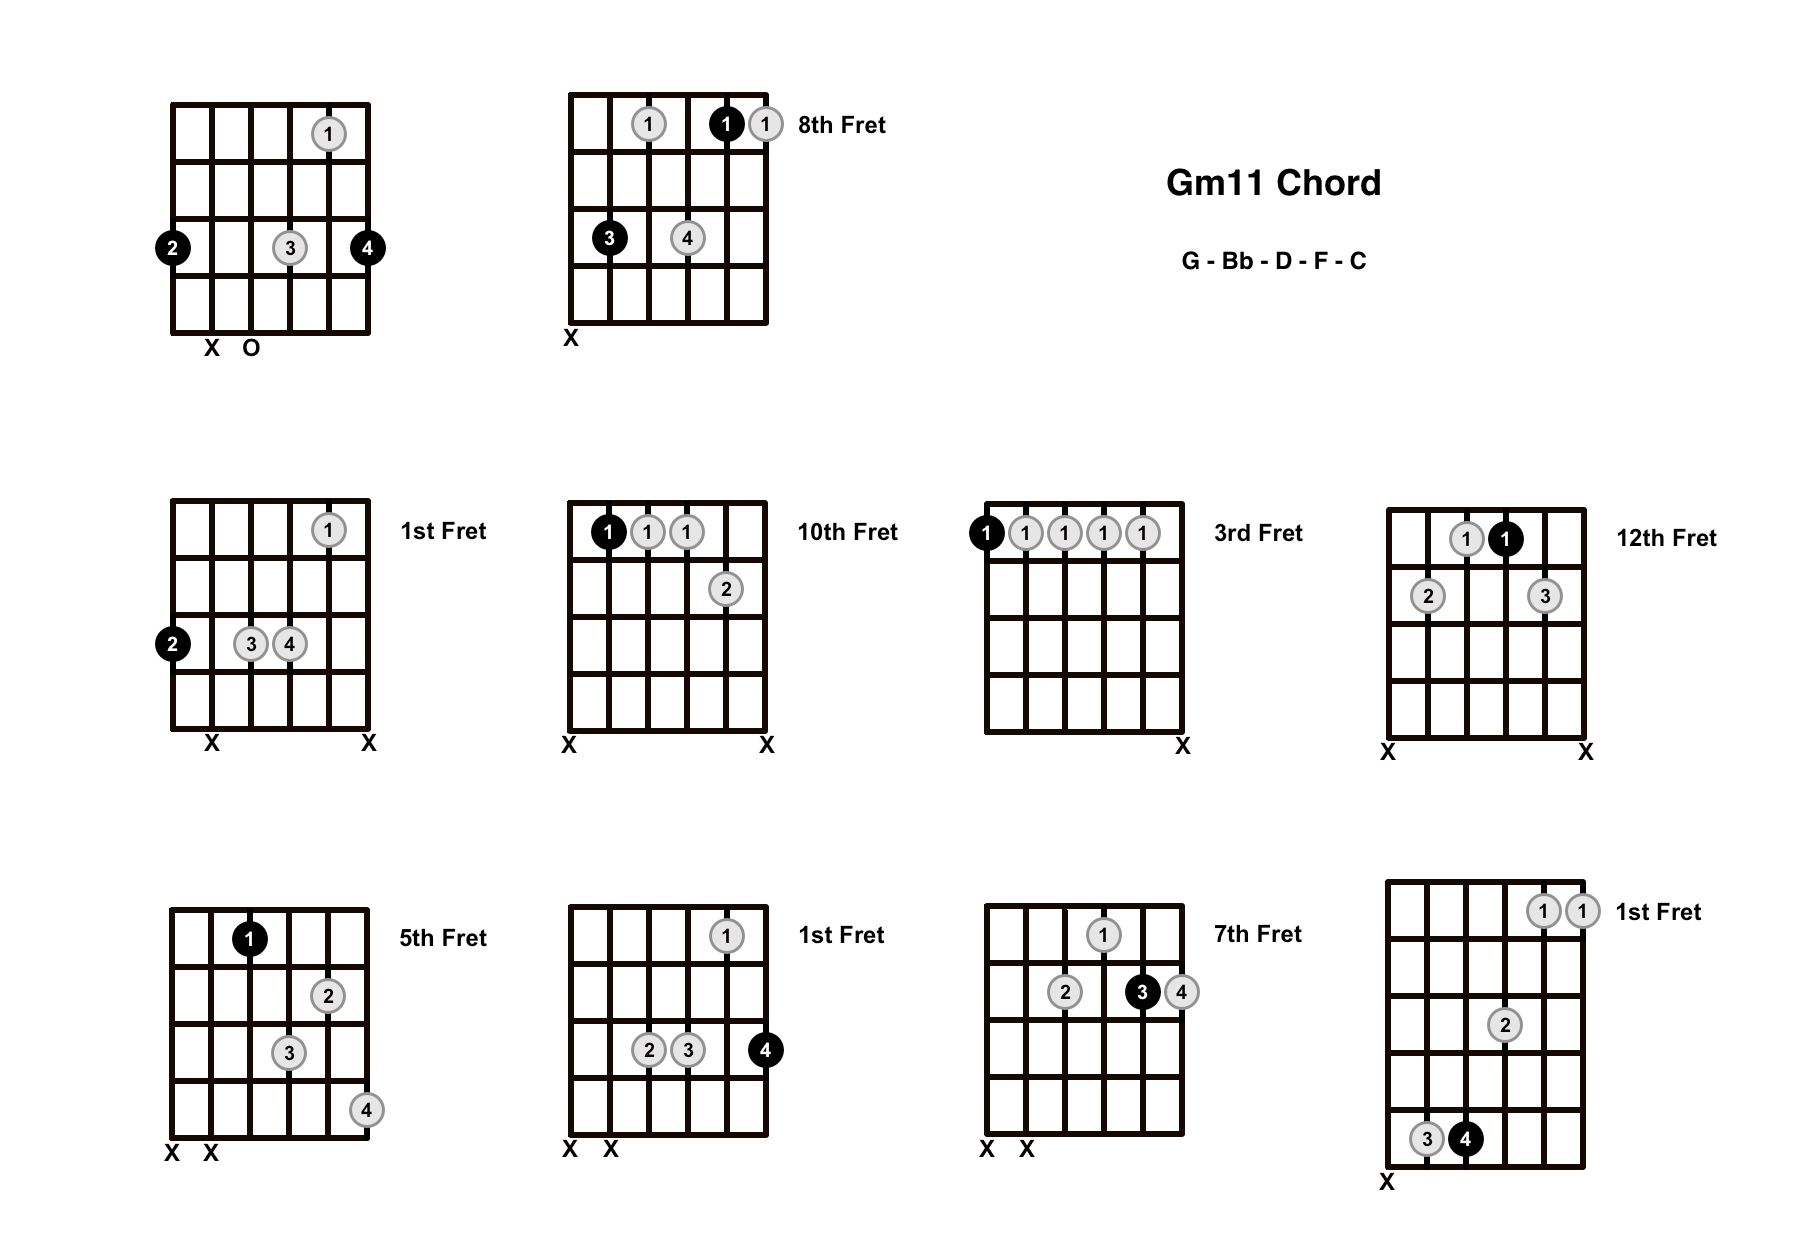 Gm11 Chord On The Guitar (G minor 11) – Diagrams, Finger Positions and Theory